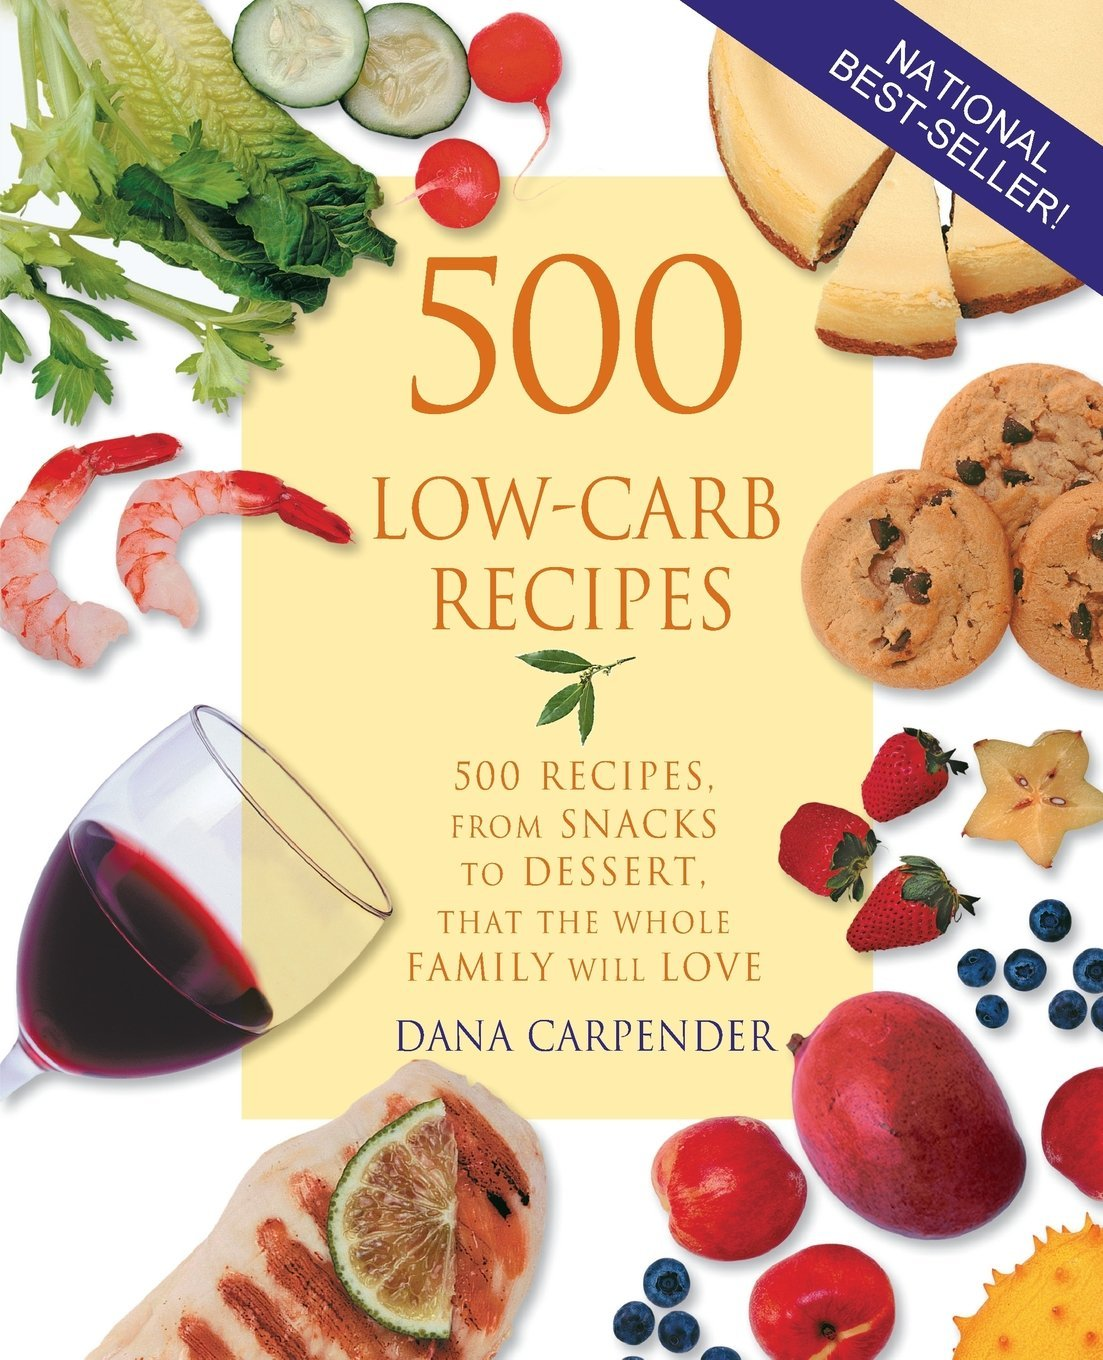 500 Low-Carb Recipes: 500 Recipes, from Snacks to Dessert